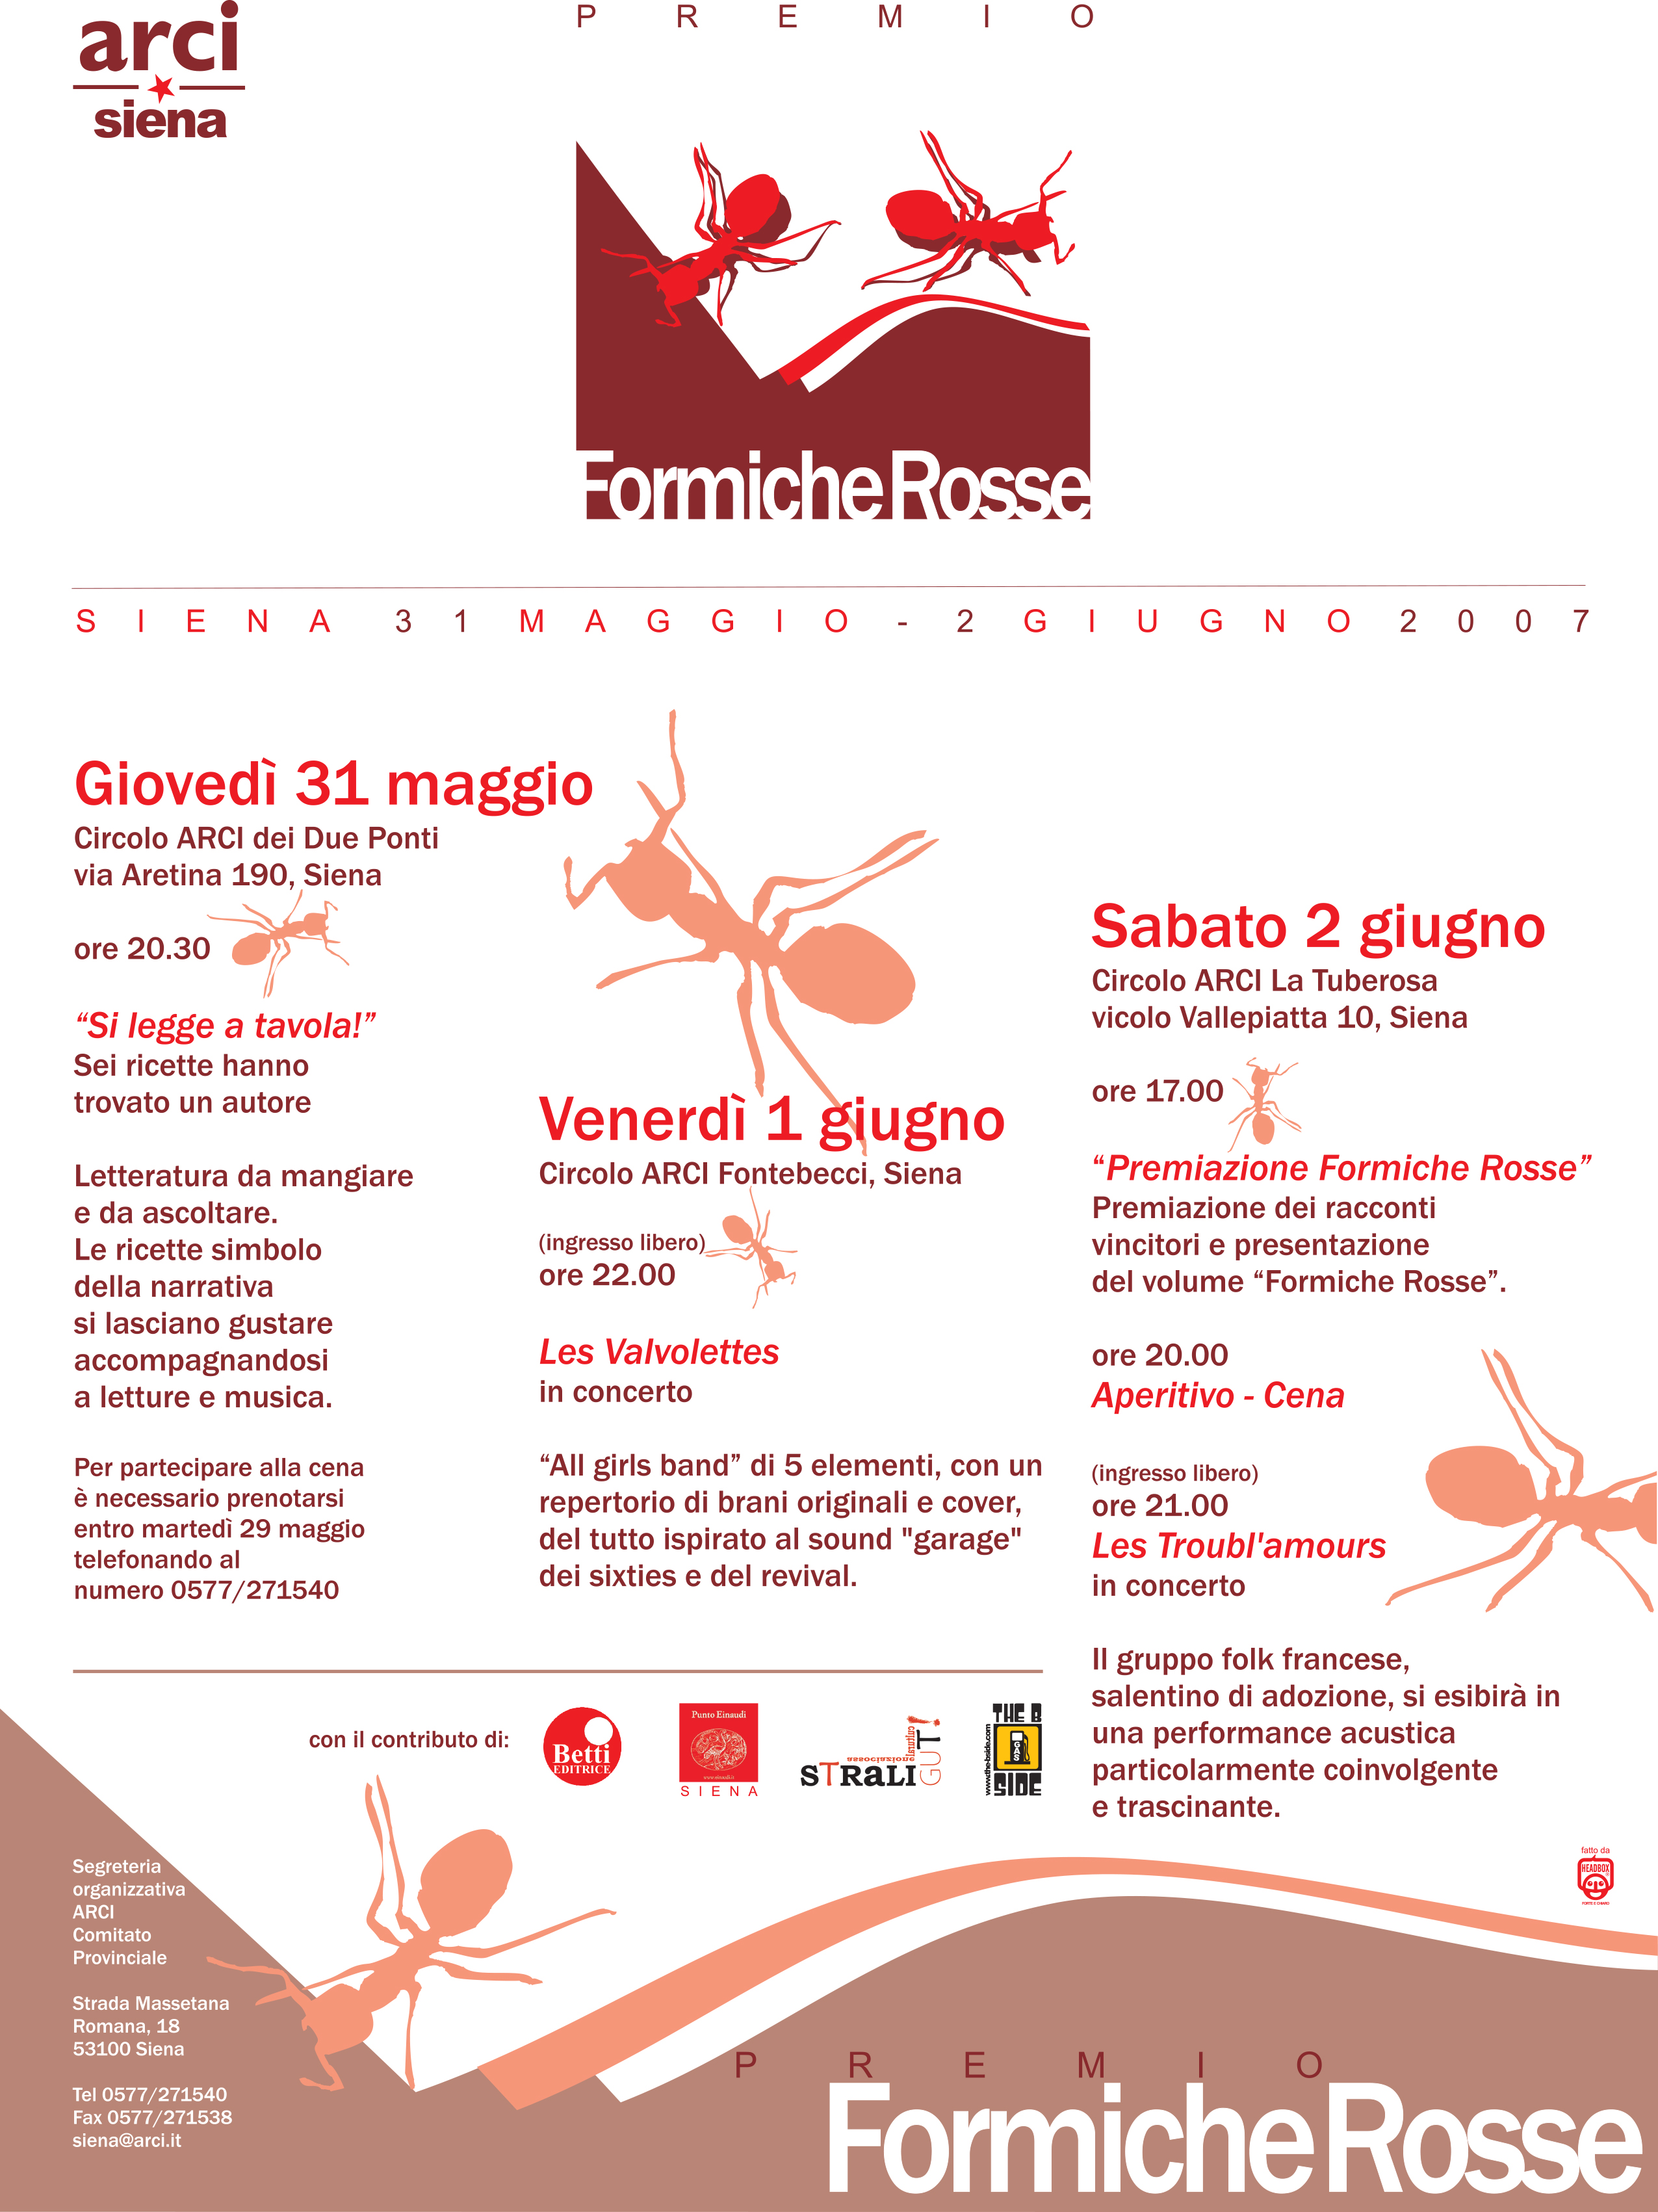 Formiche rosse exec